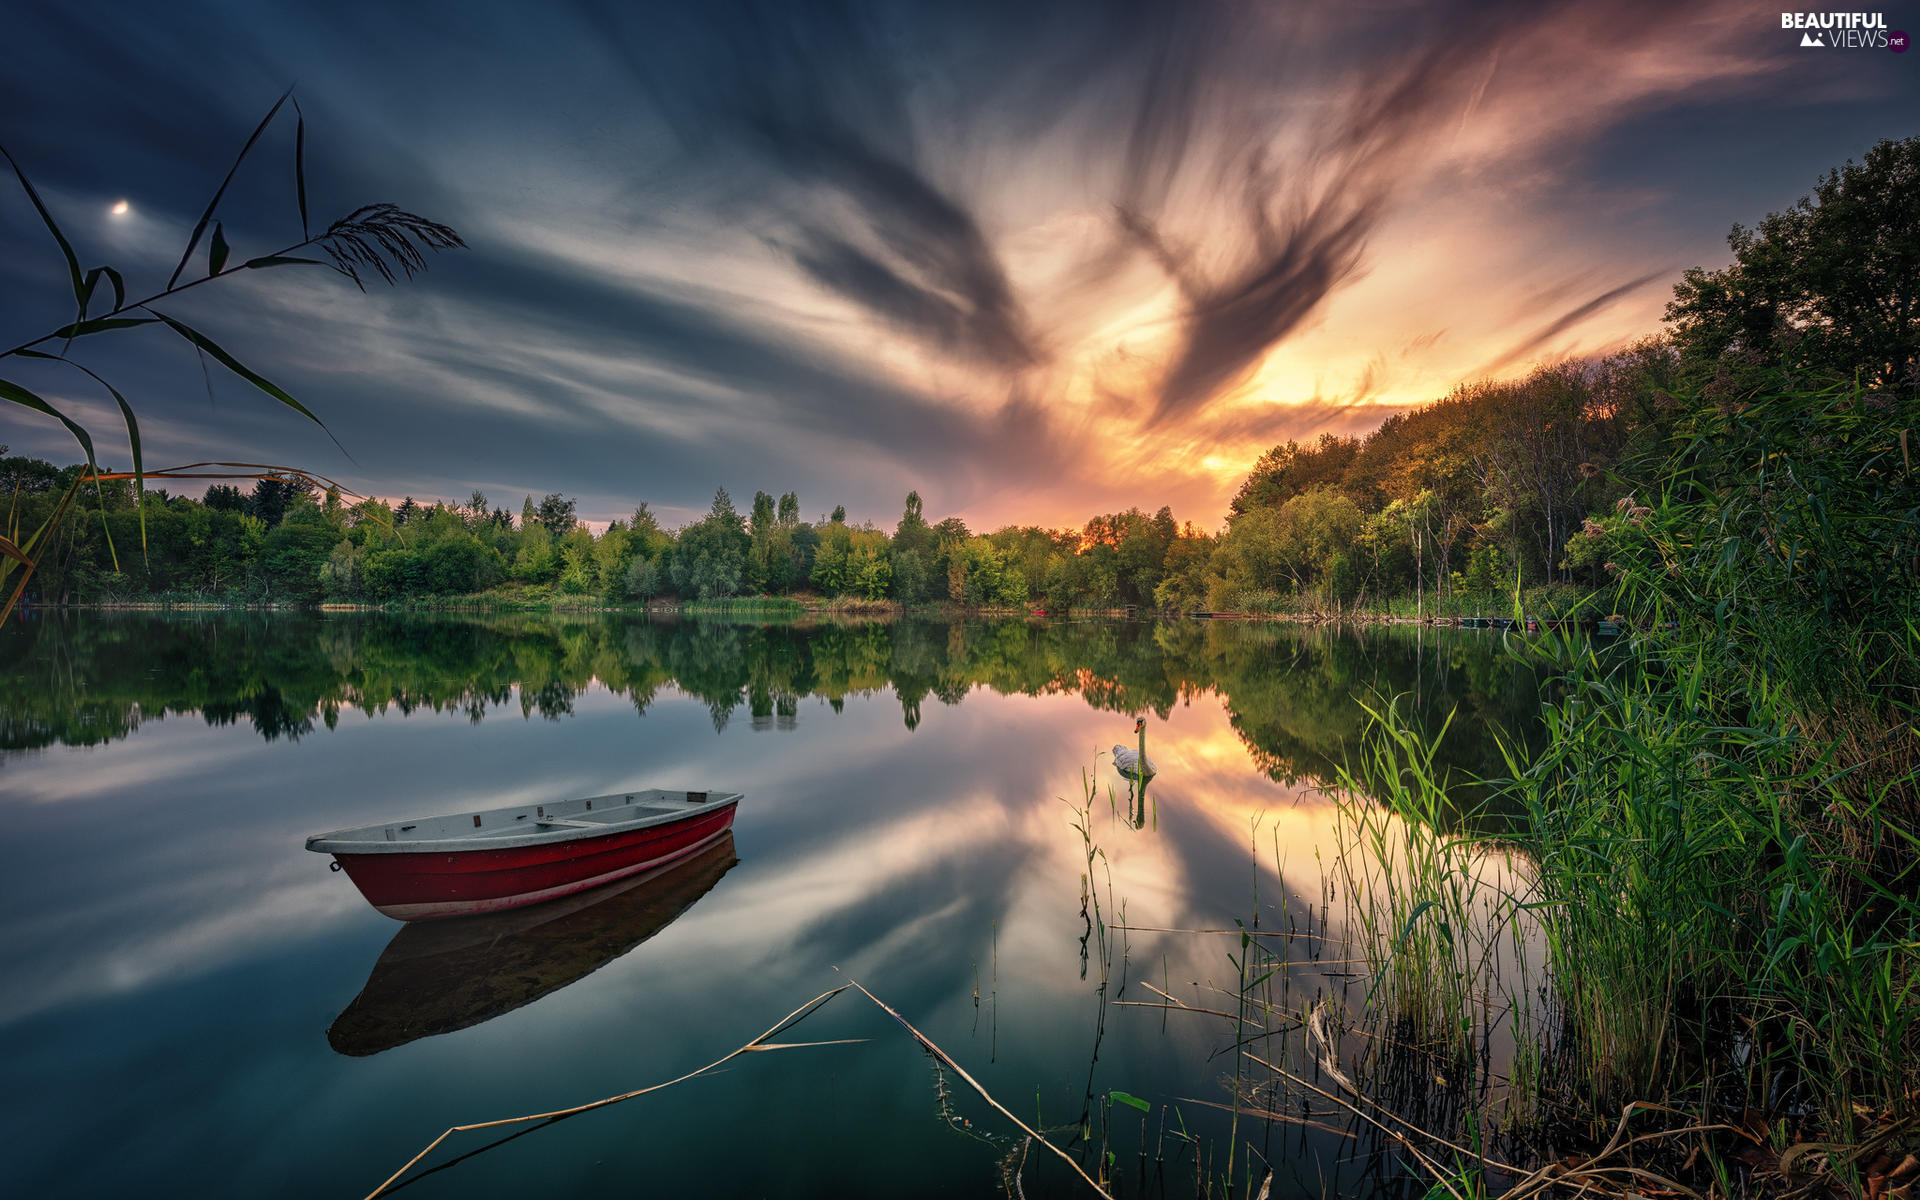 Swans, grass, Sunrise, trees, clouds, Boat, lake, viewes